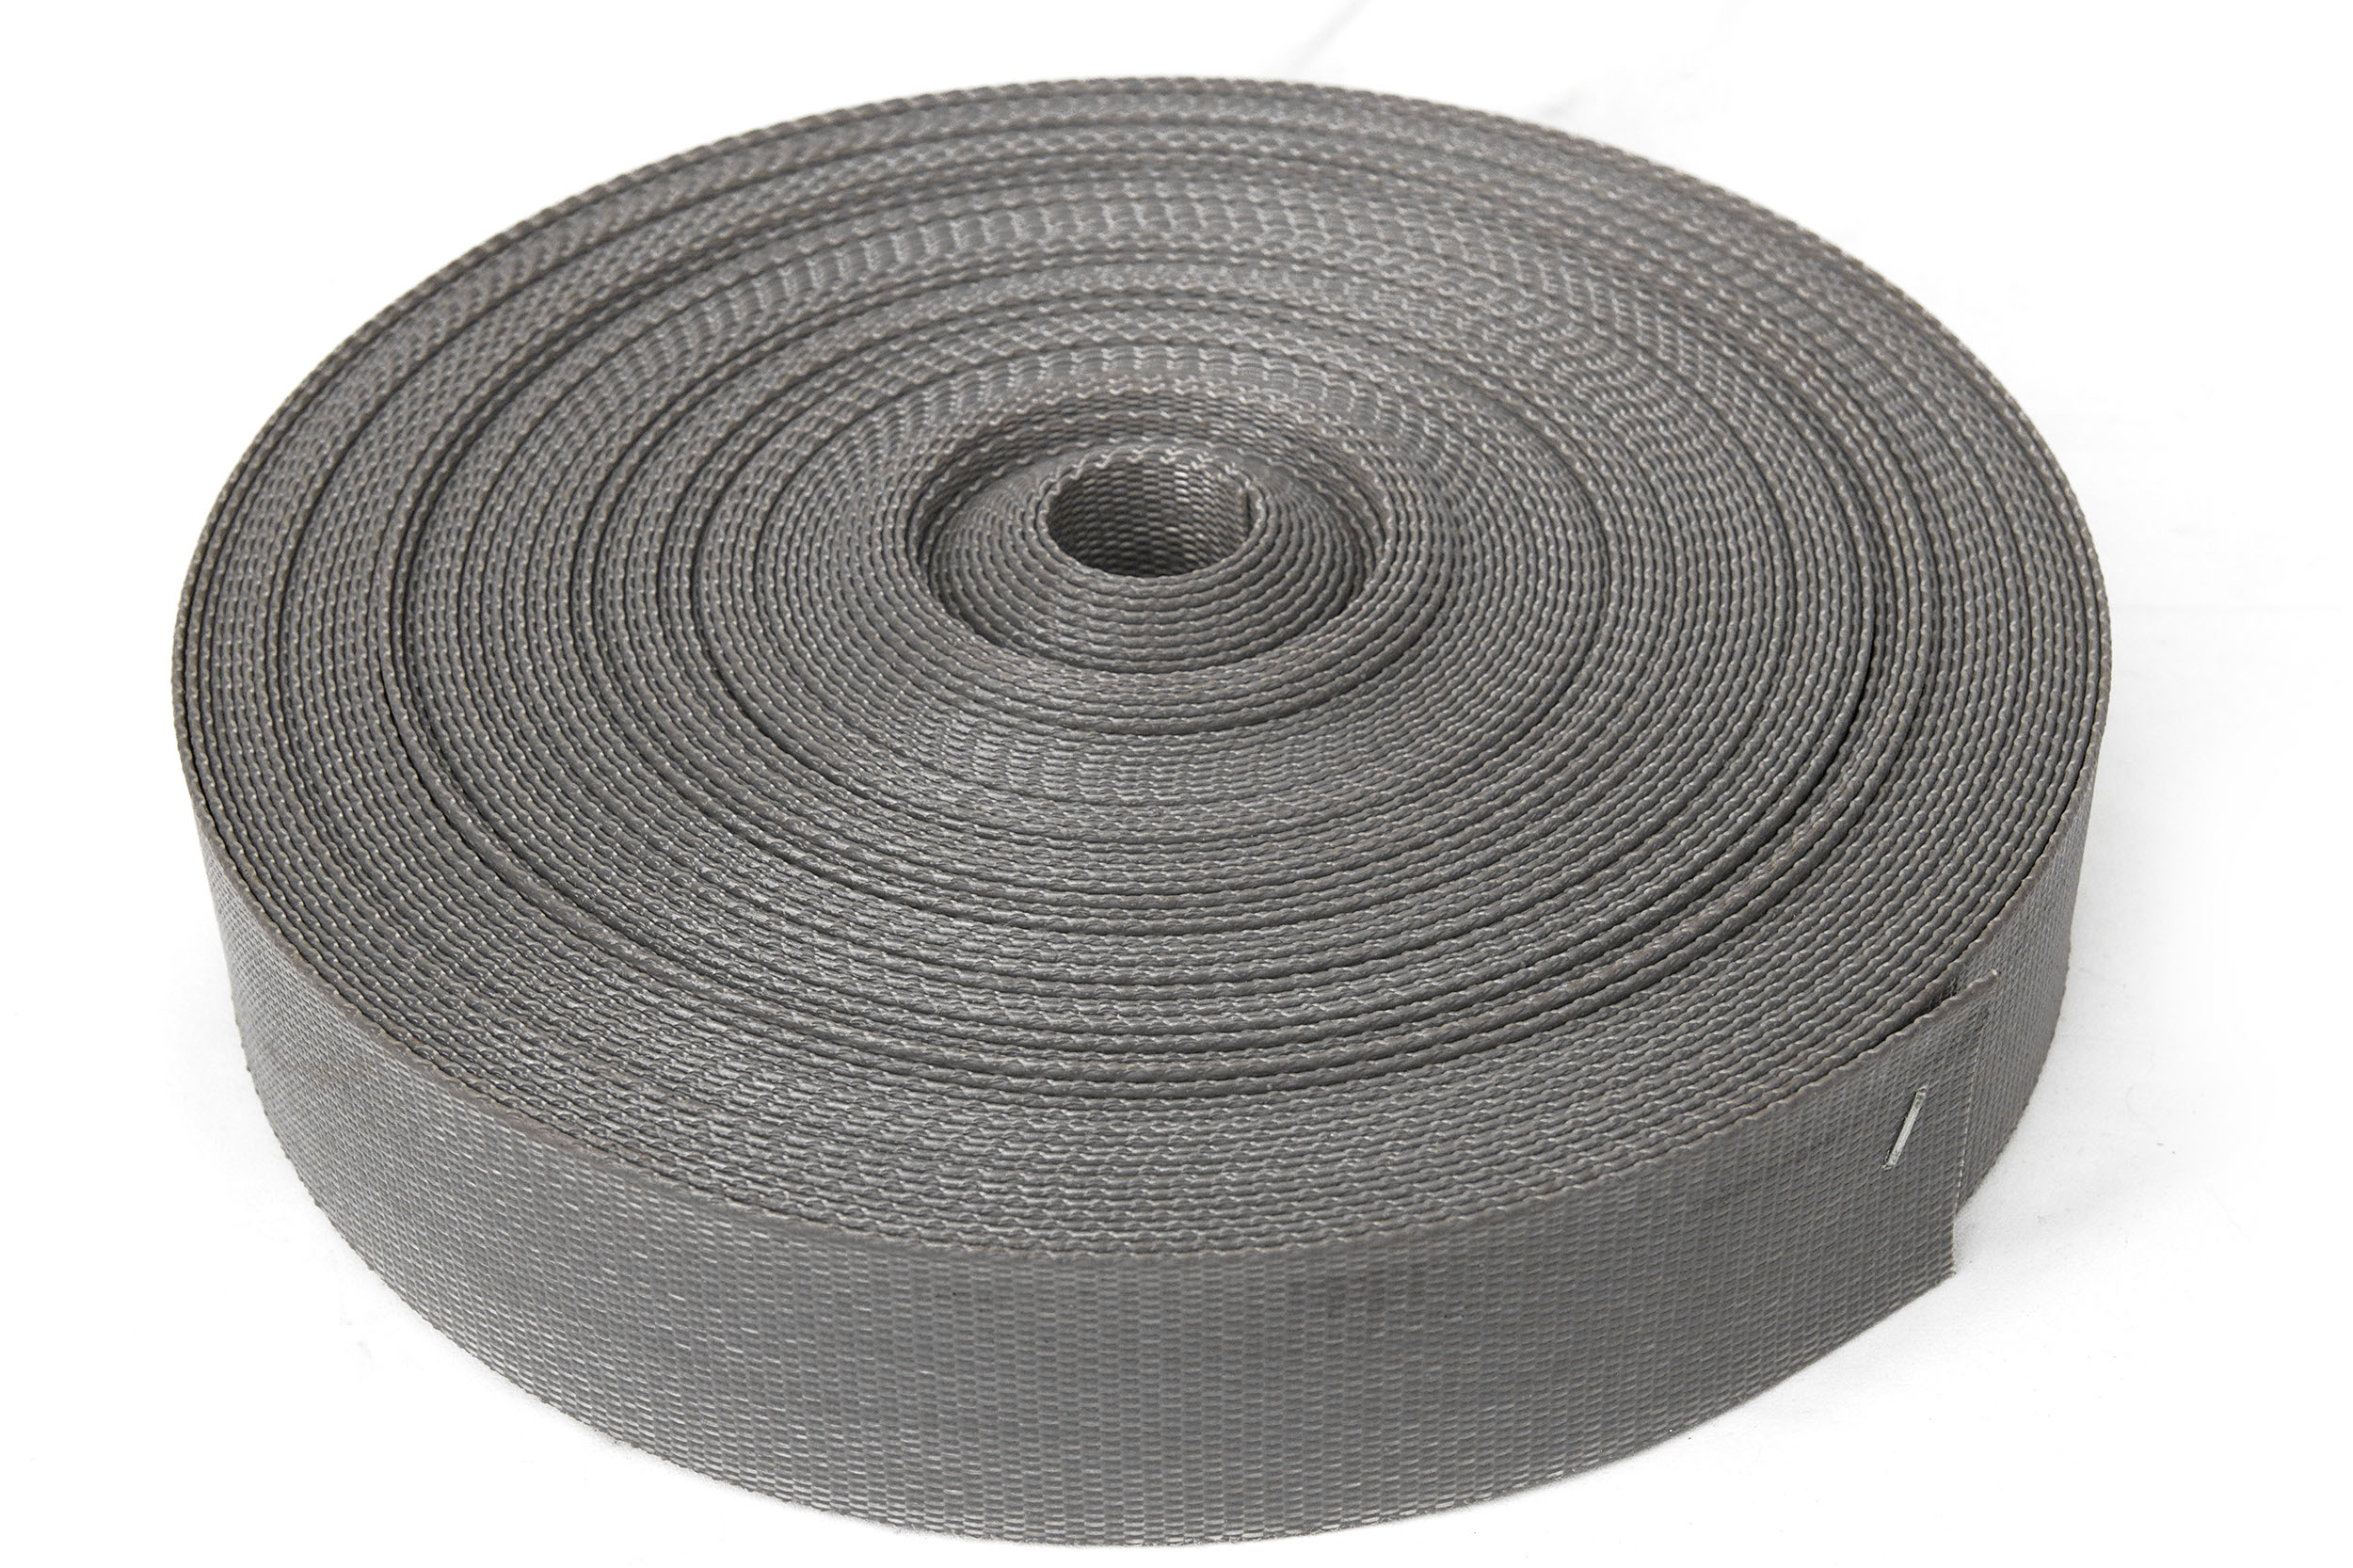 Weldable-Tape-Grey-5.jpg